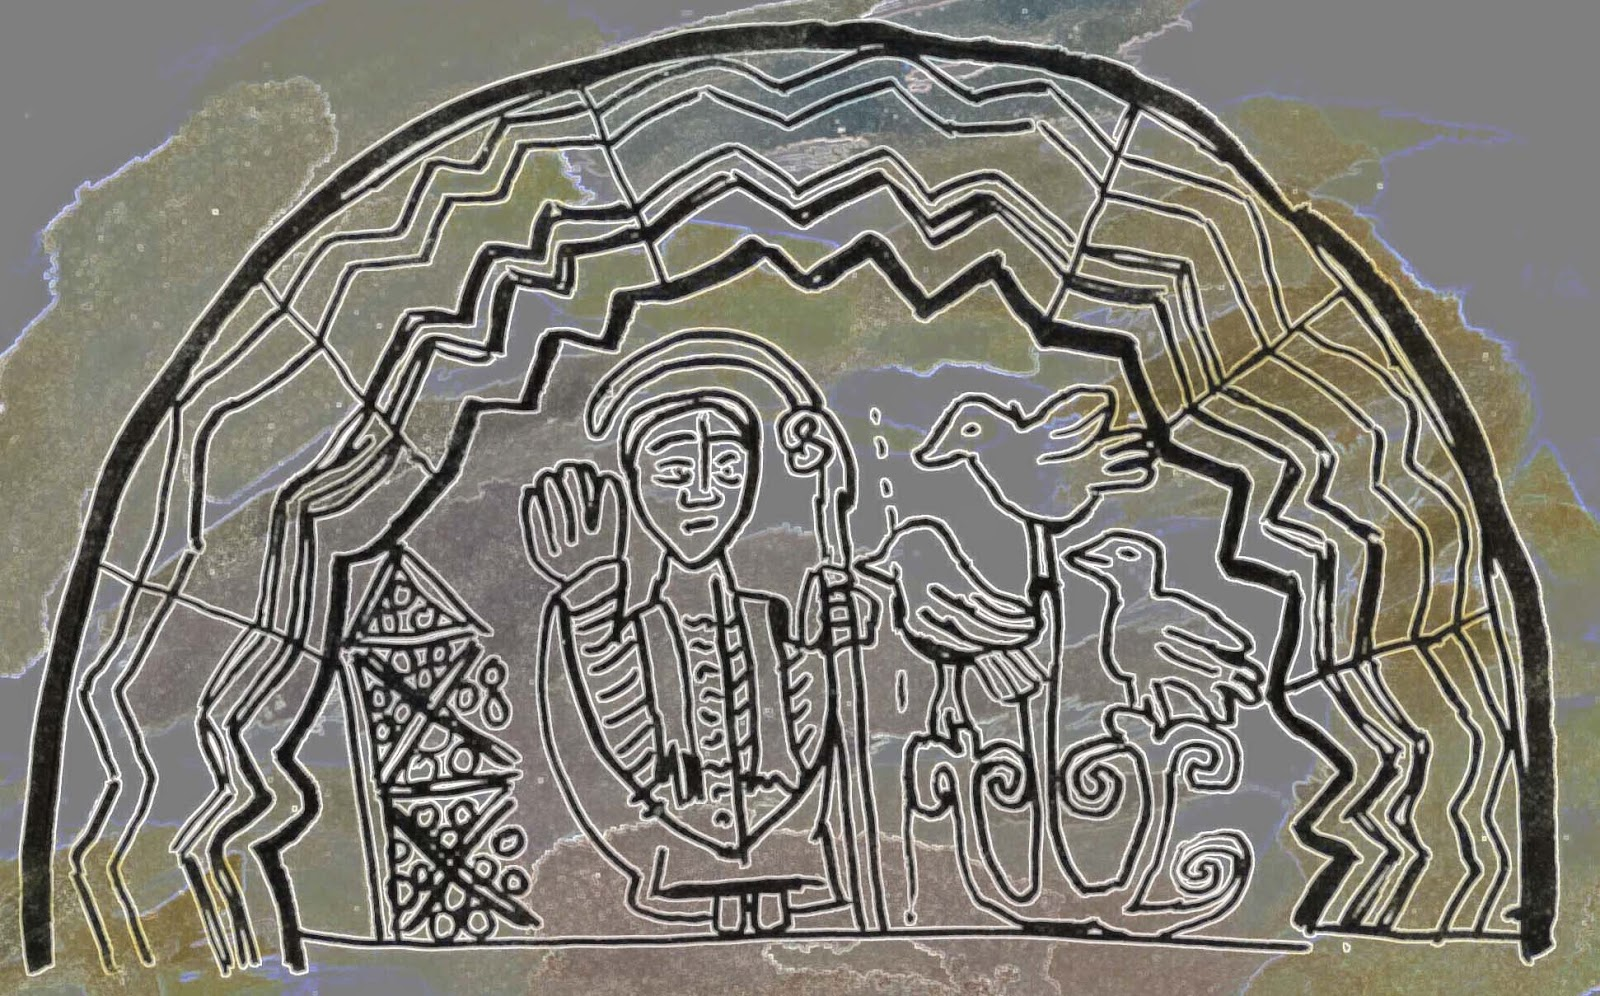 A digitally altered version of my pen sketch of the Norman tympanum. Under a zig-zag arch, a bishop stands next to three birds perched on a tree.